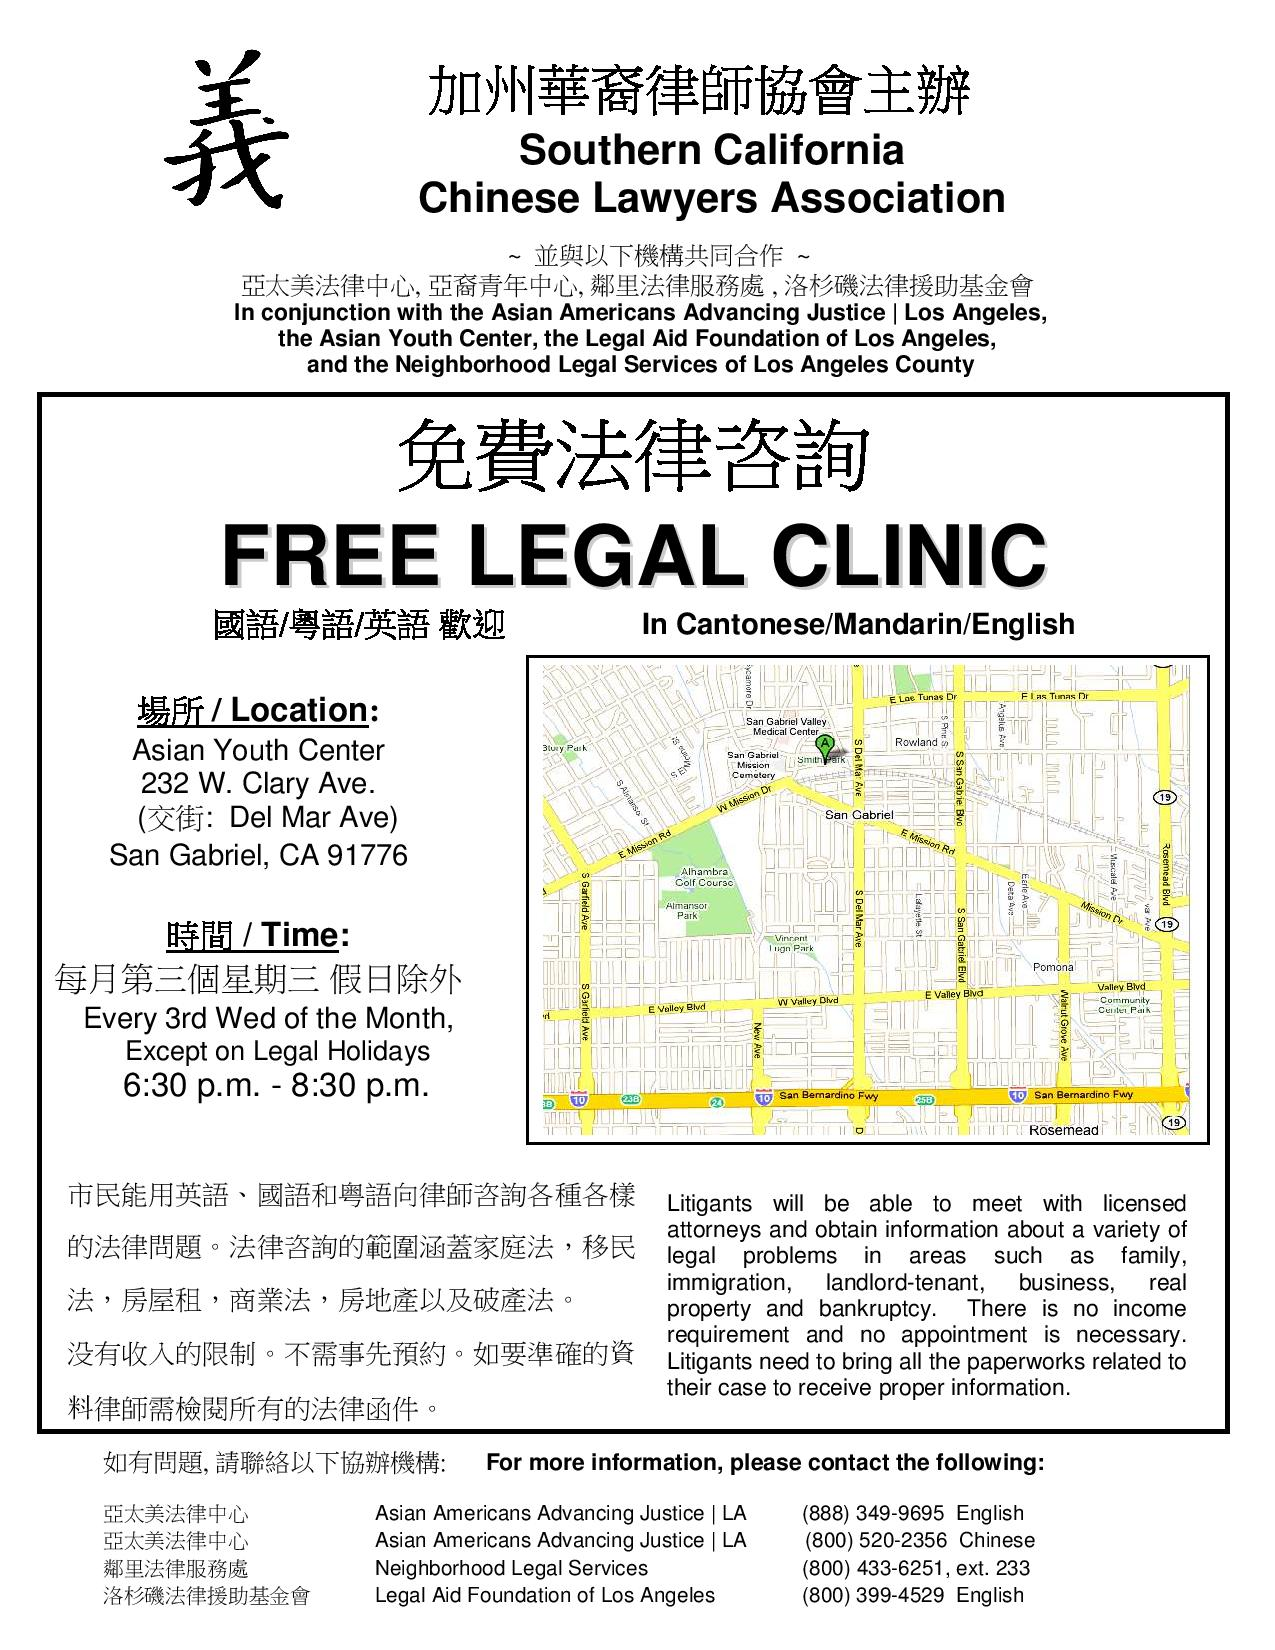 Flyer for free legal clinic at AYC